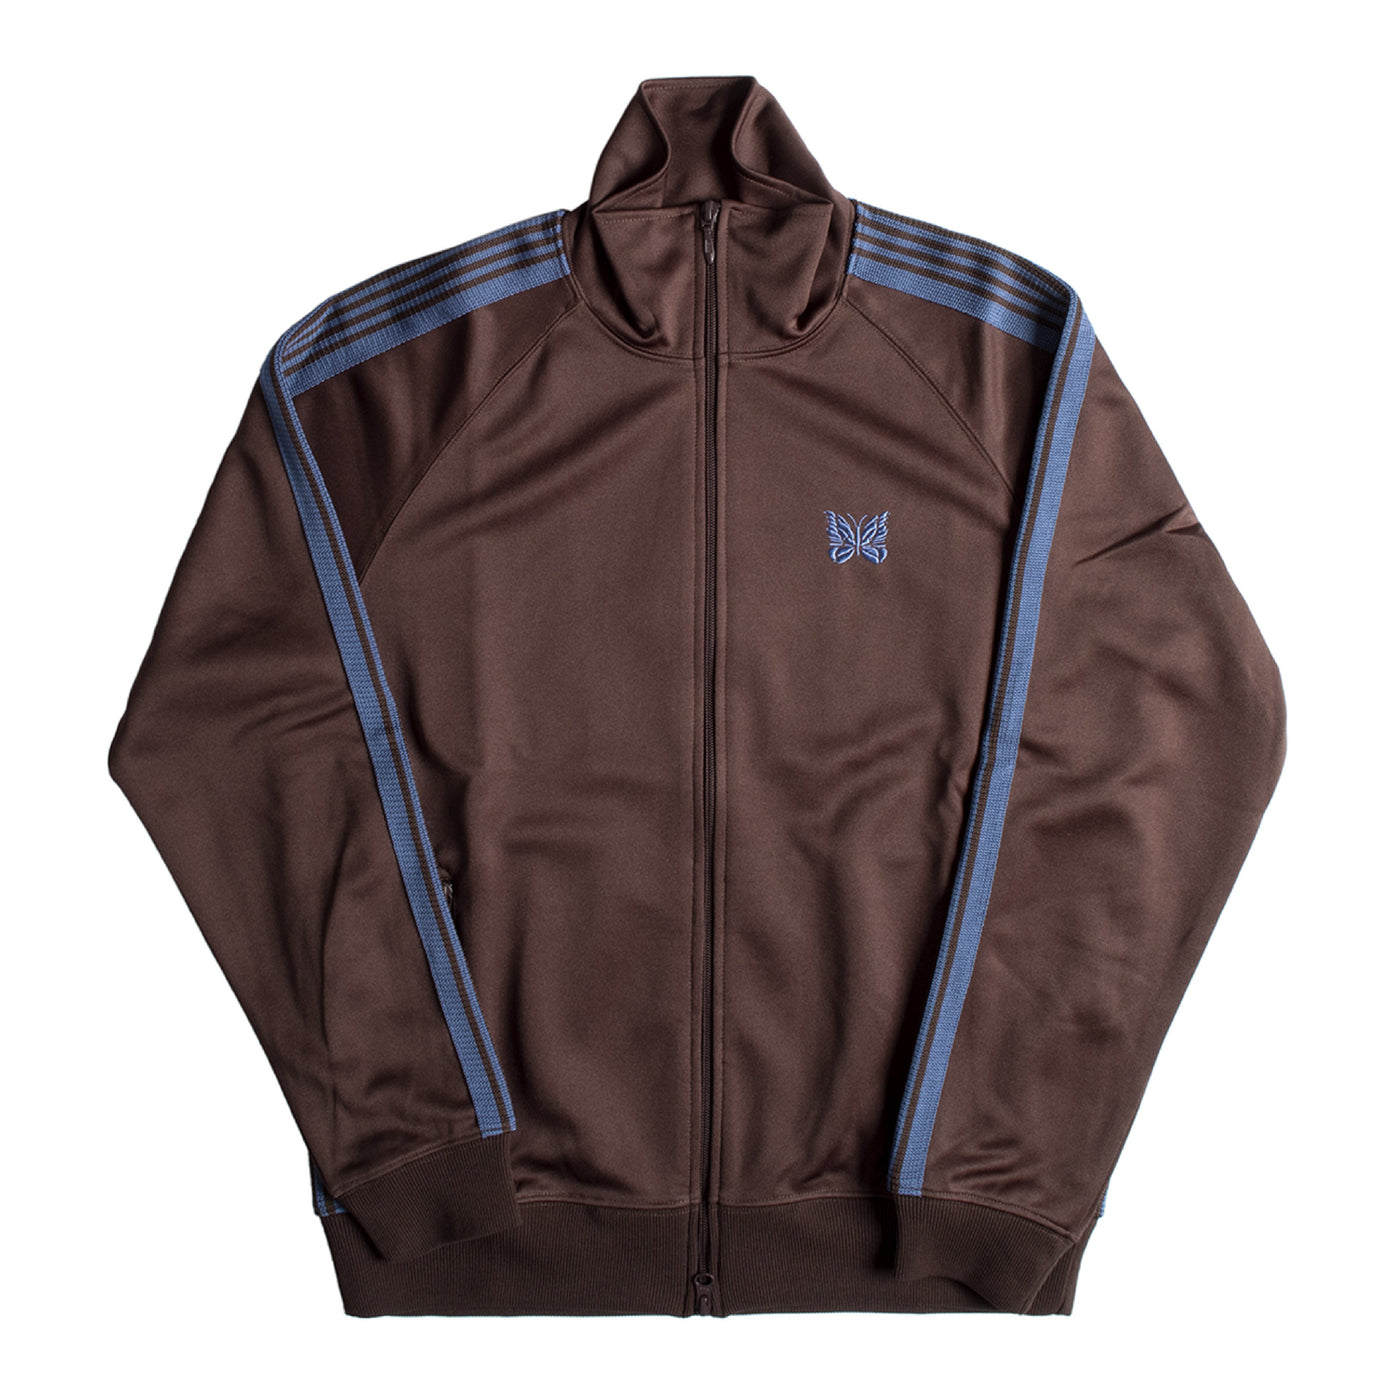 Load image into Gallery viewer, NEEDLES TRACK JACKET BROWN